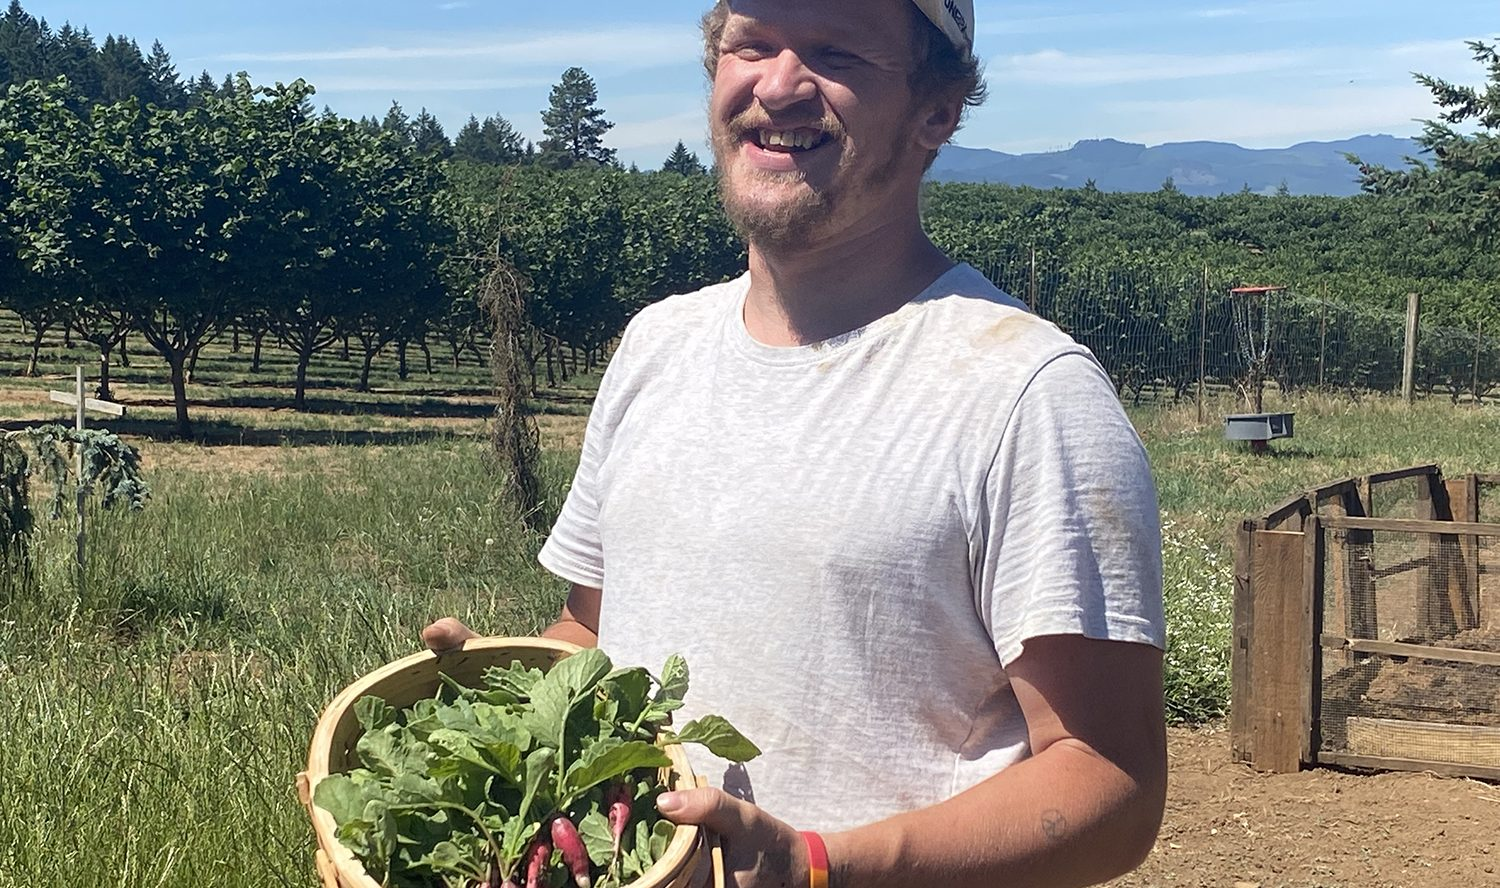 Harvesting radishes at Blanchet Farm. Gardening benefits people in addiction recovery.